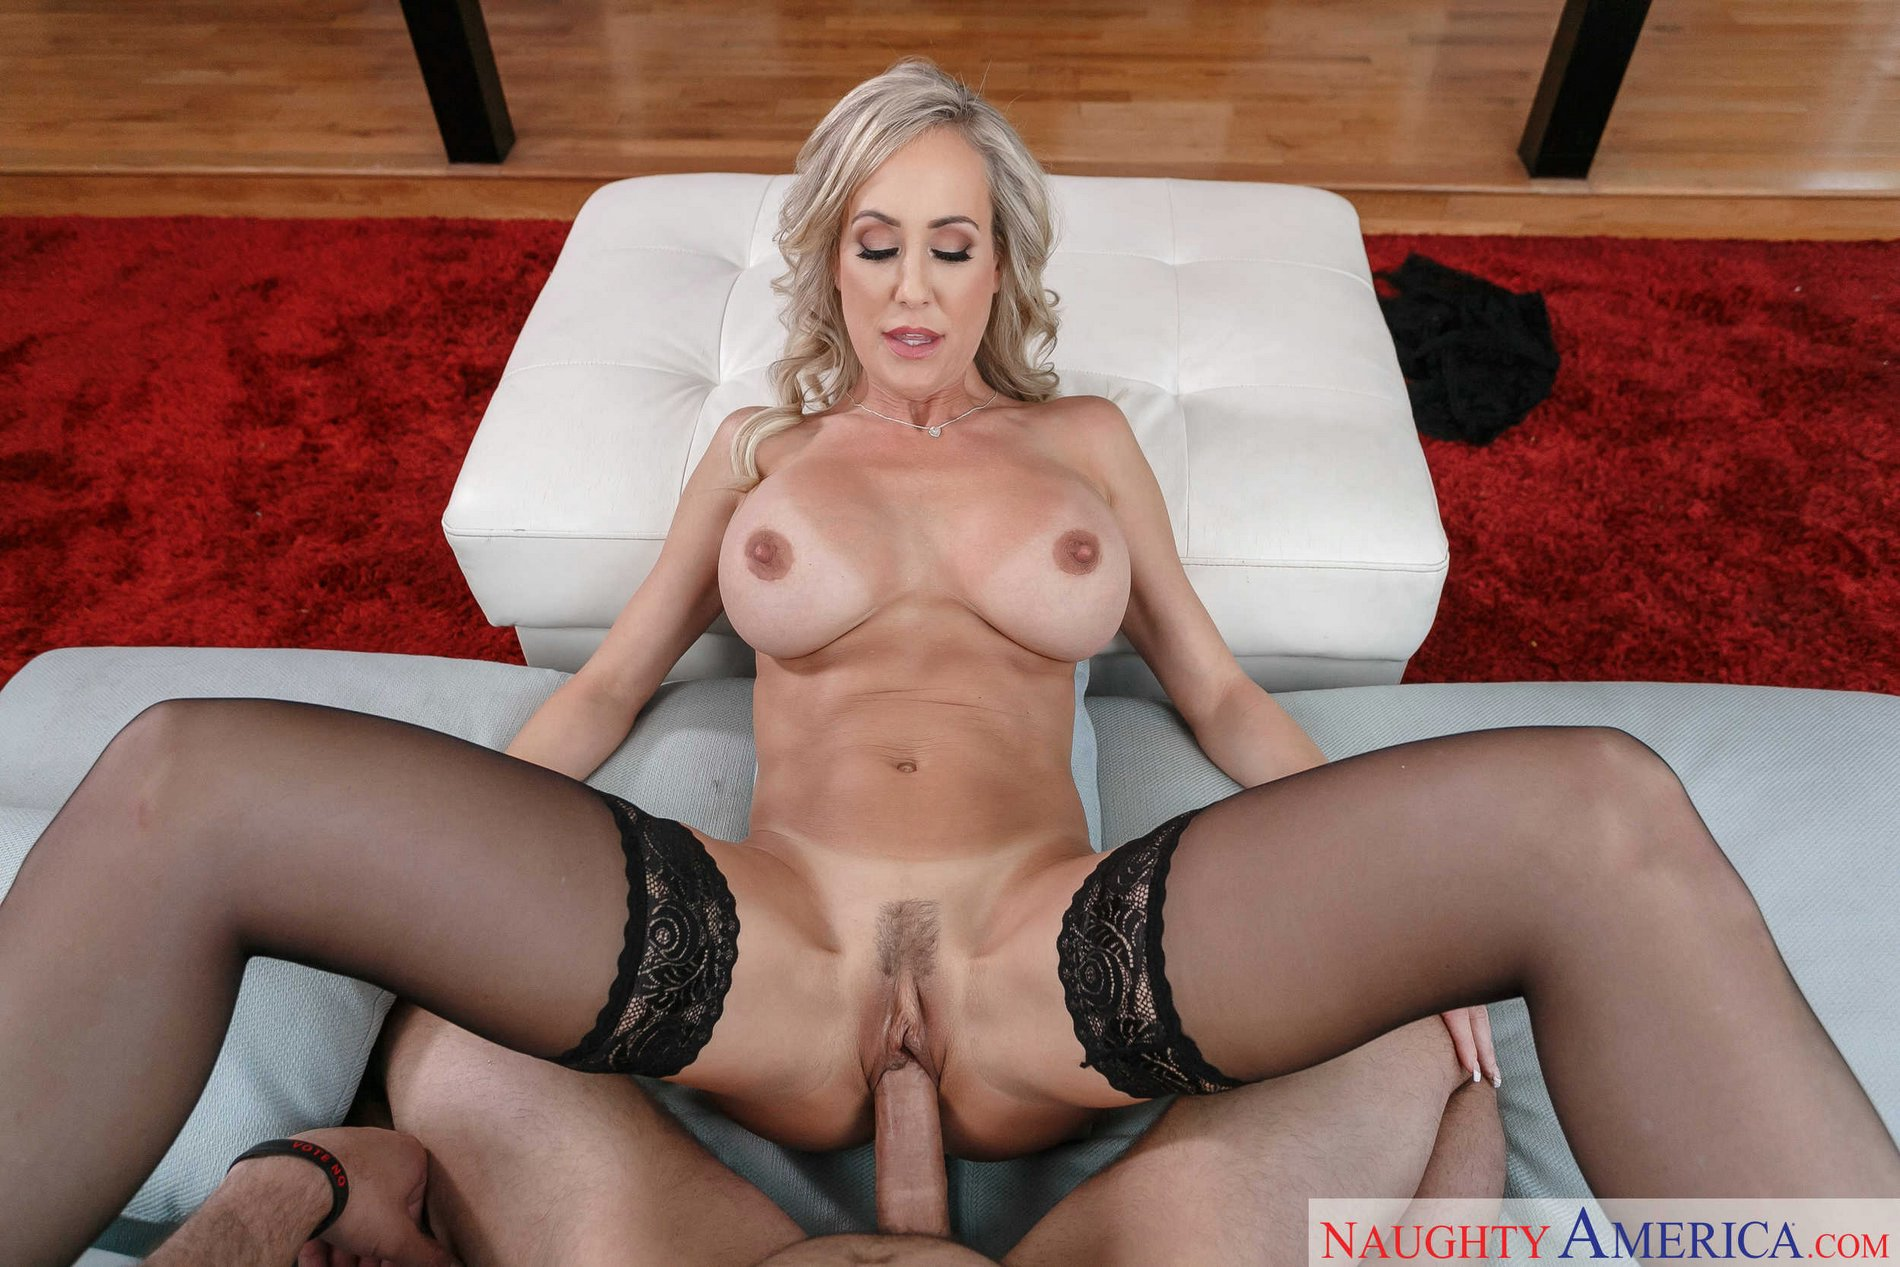 Milf brandi love gives the best massage 8